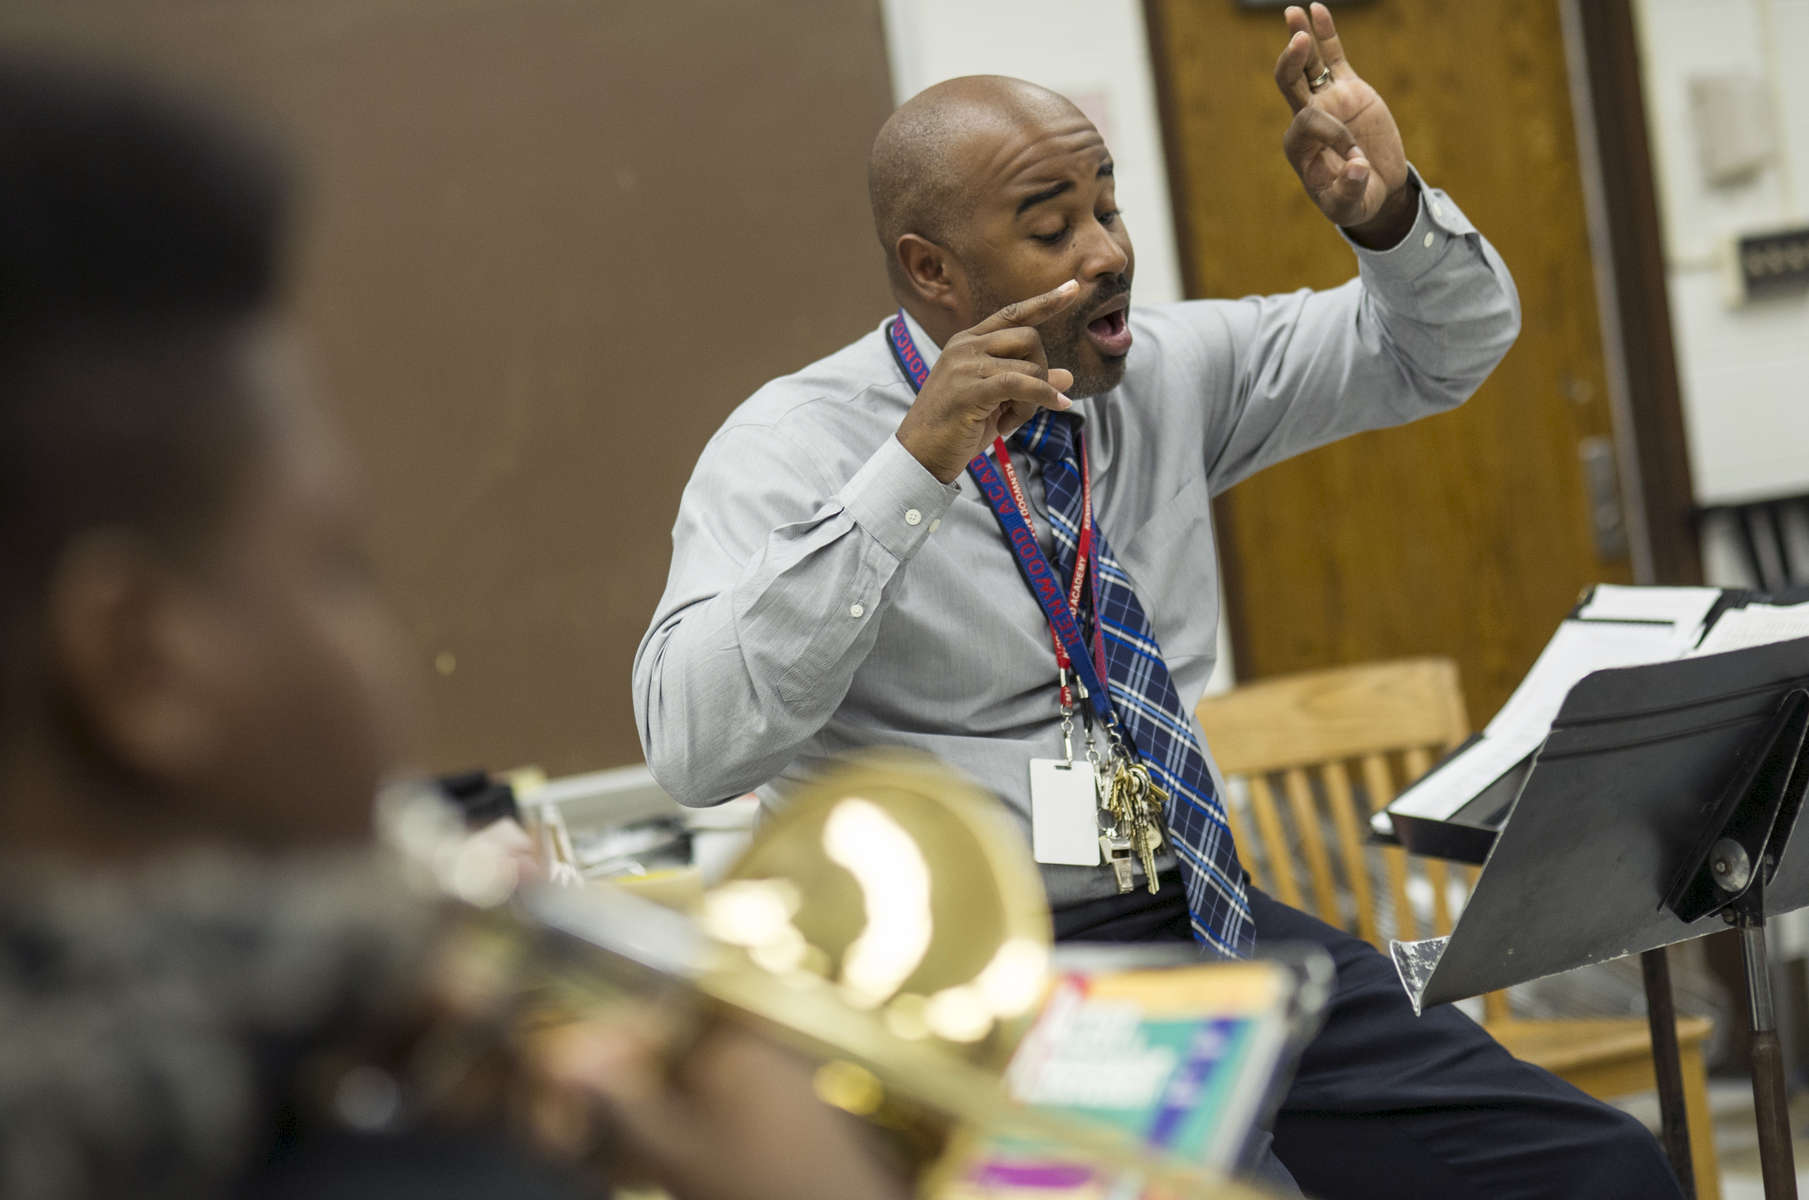 Music Department Chair and Band Director Gerald Powell conducts during a sectional meeting of the Intermediate Band class at Kenwood Academy High School, November 2, 2016.